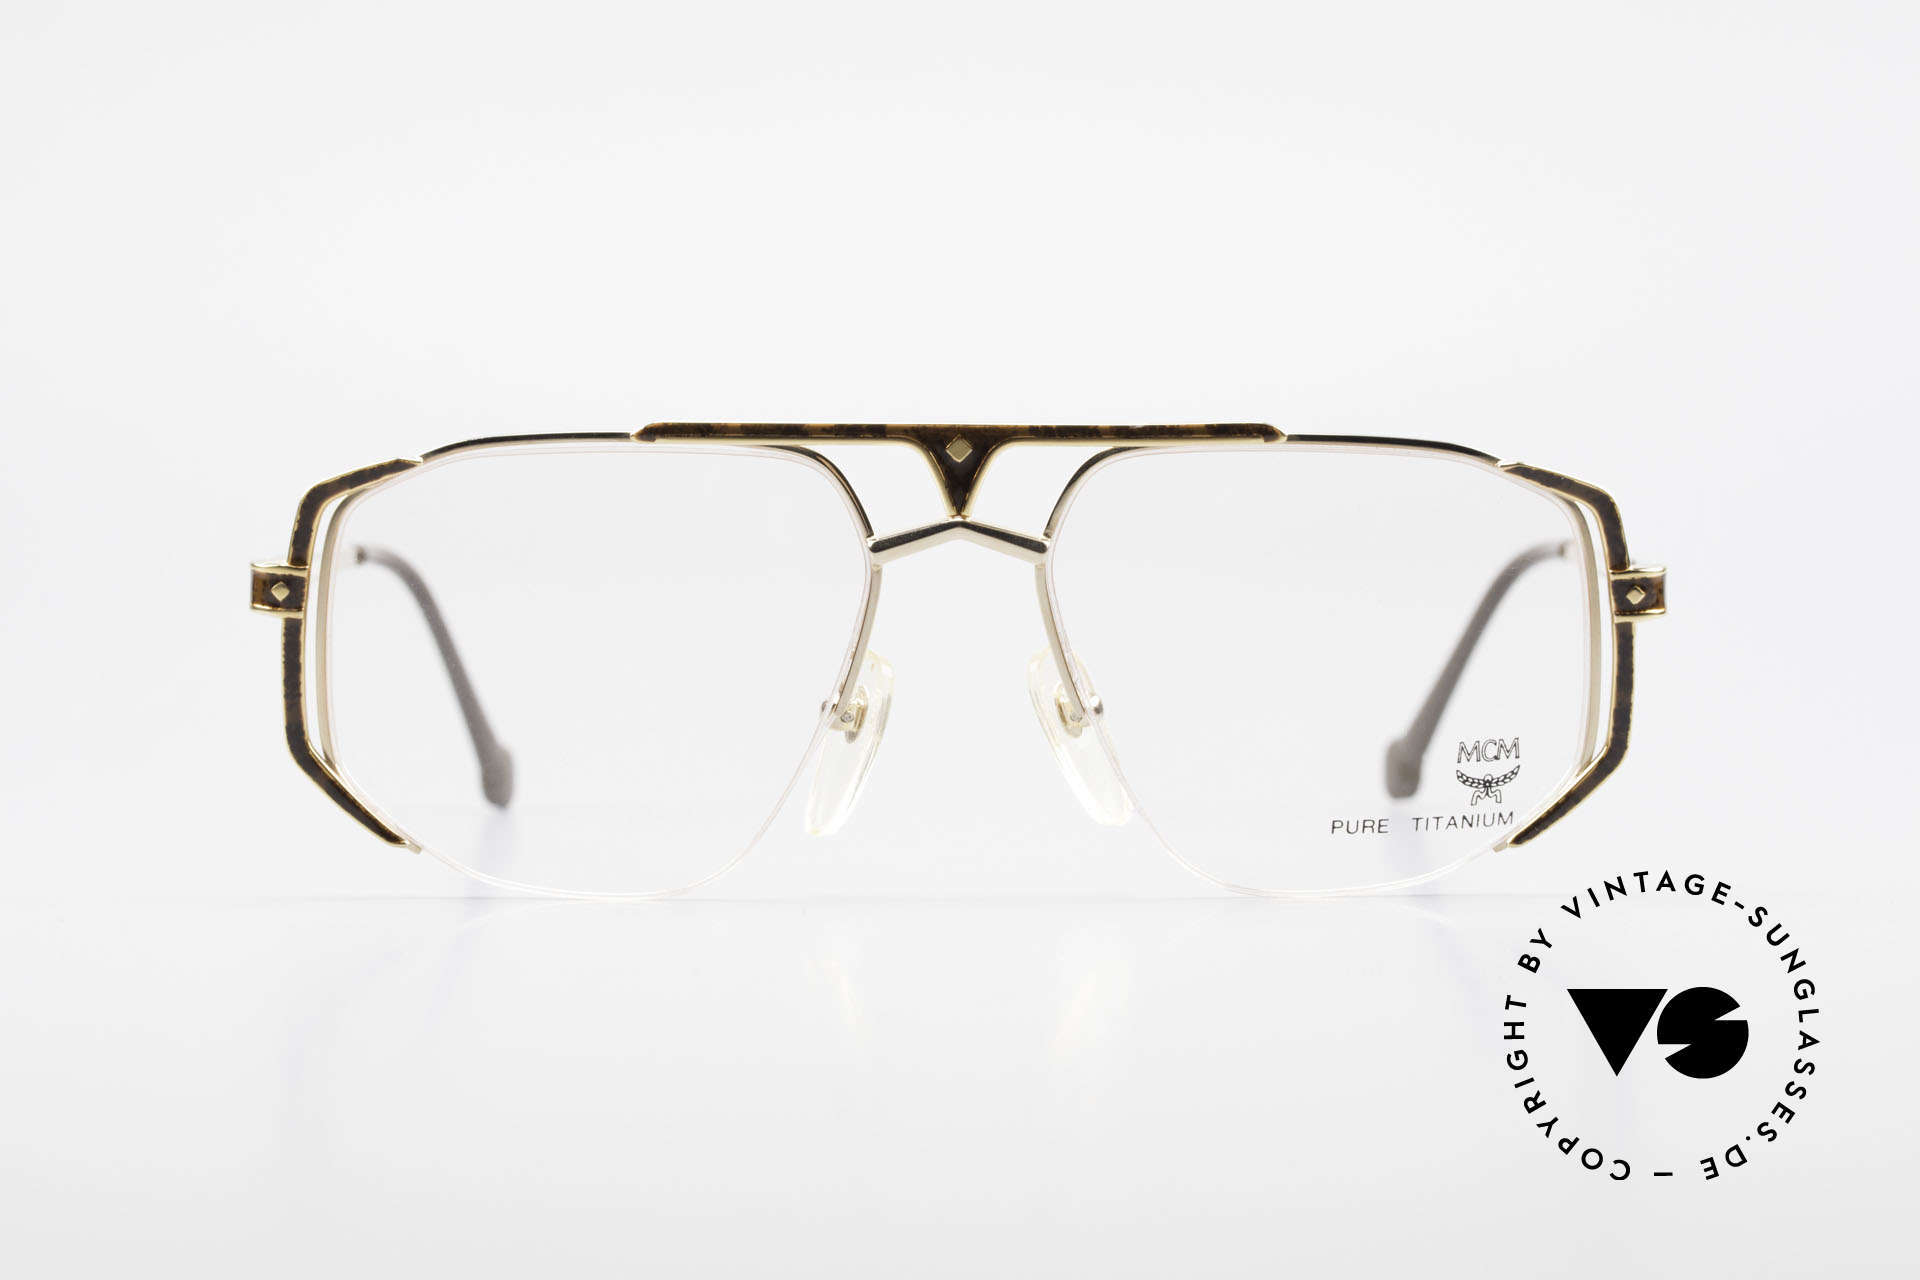 MCM München 5 Titanium Glasses Gold Plated, pure TITANIUM; gold-plated and root-wood appliqué, Made for Men